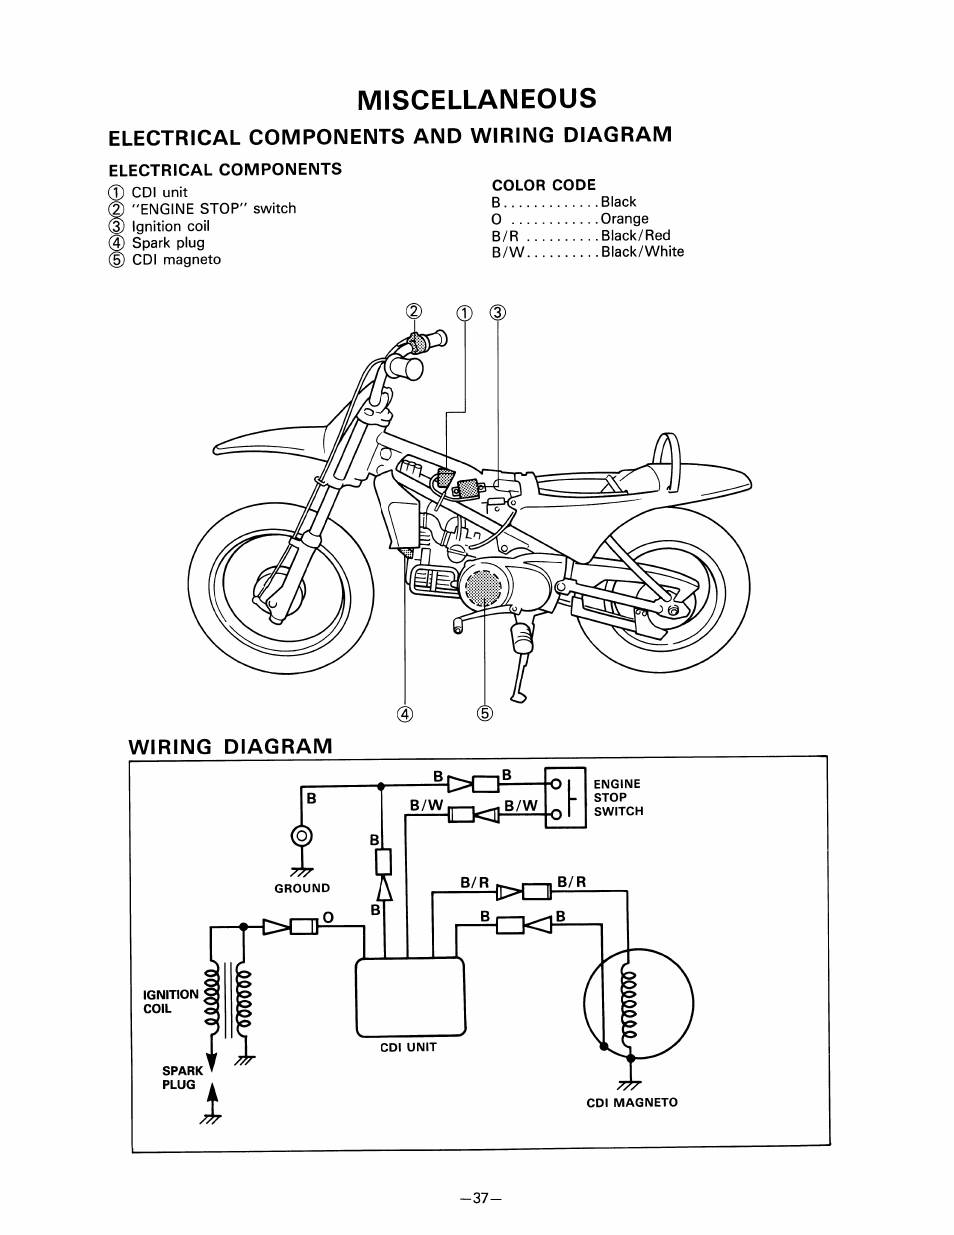 Pw Yamaha Cdi Wiring Diagram Archive Of Automotive Webasto Thermo Top C Miscellaneous Electrical Components And Rh Manualsdir Com